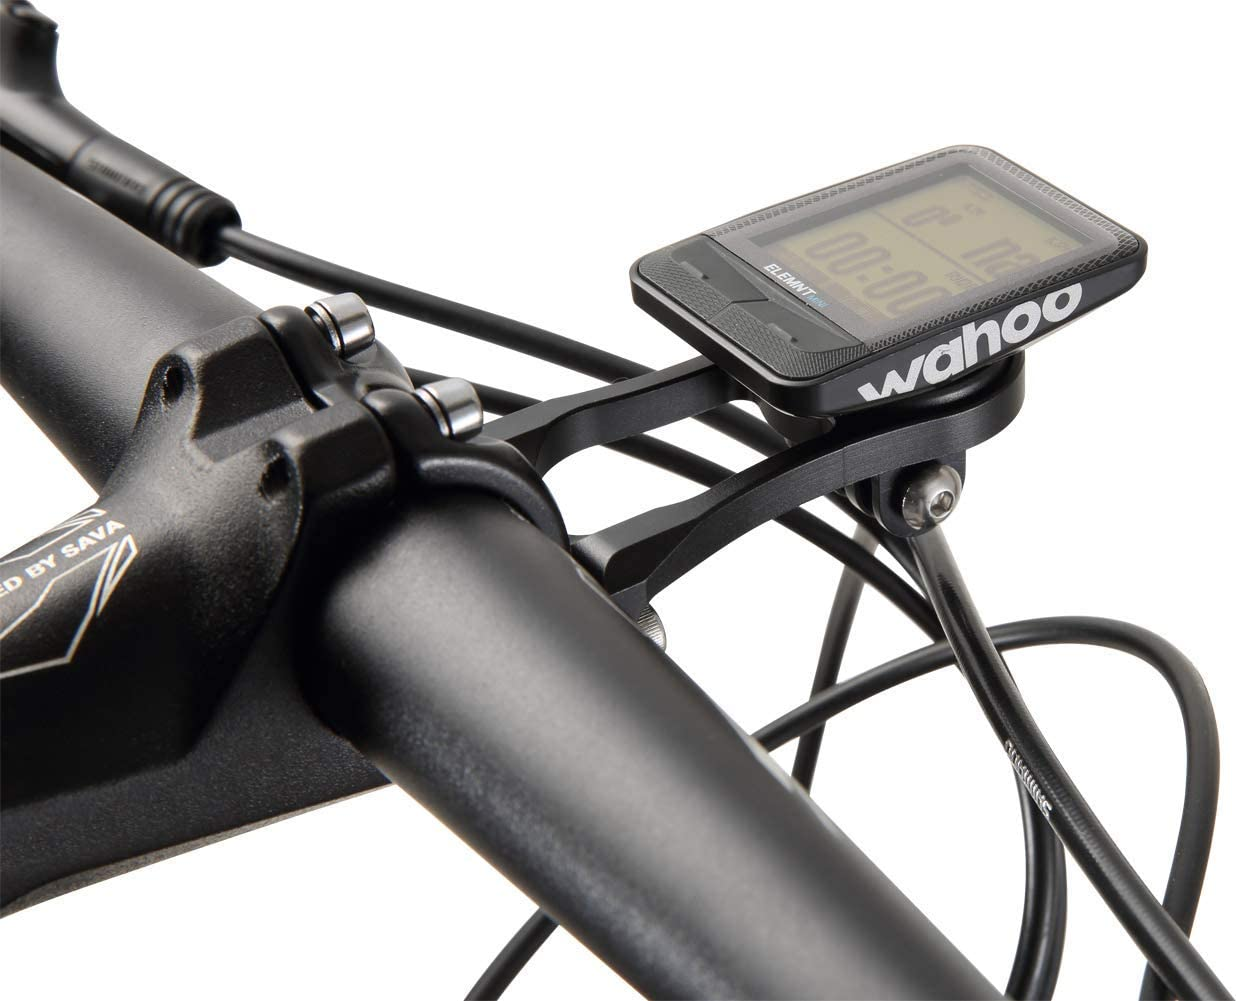 Dymoece Out Front Combo Extended Mount for Wahoo Elemnt,Bicycle Mount for Wahoo Elemnt Bolt,Elemnt Mini,Gopro Interface Sports Action Camera and Bike Lights